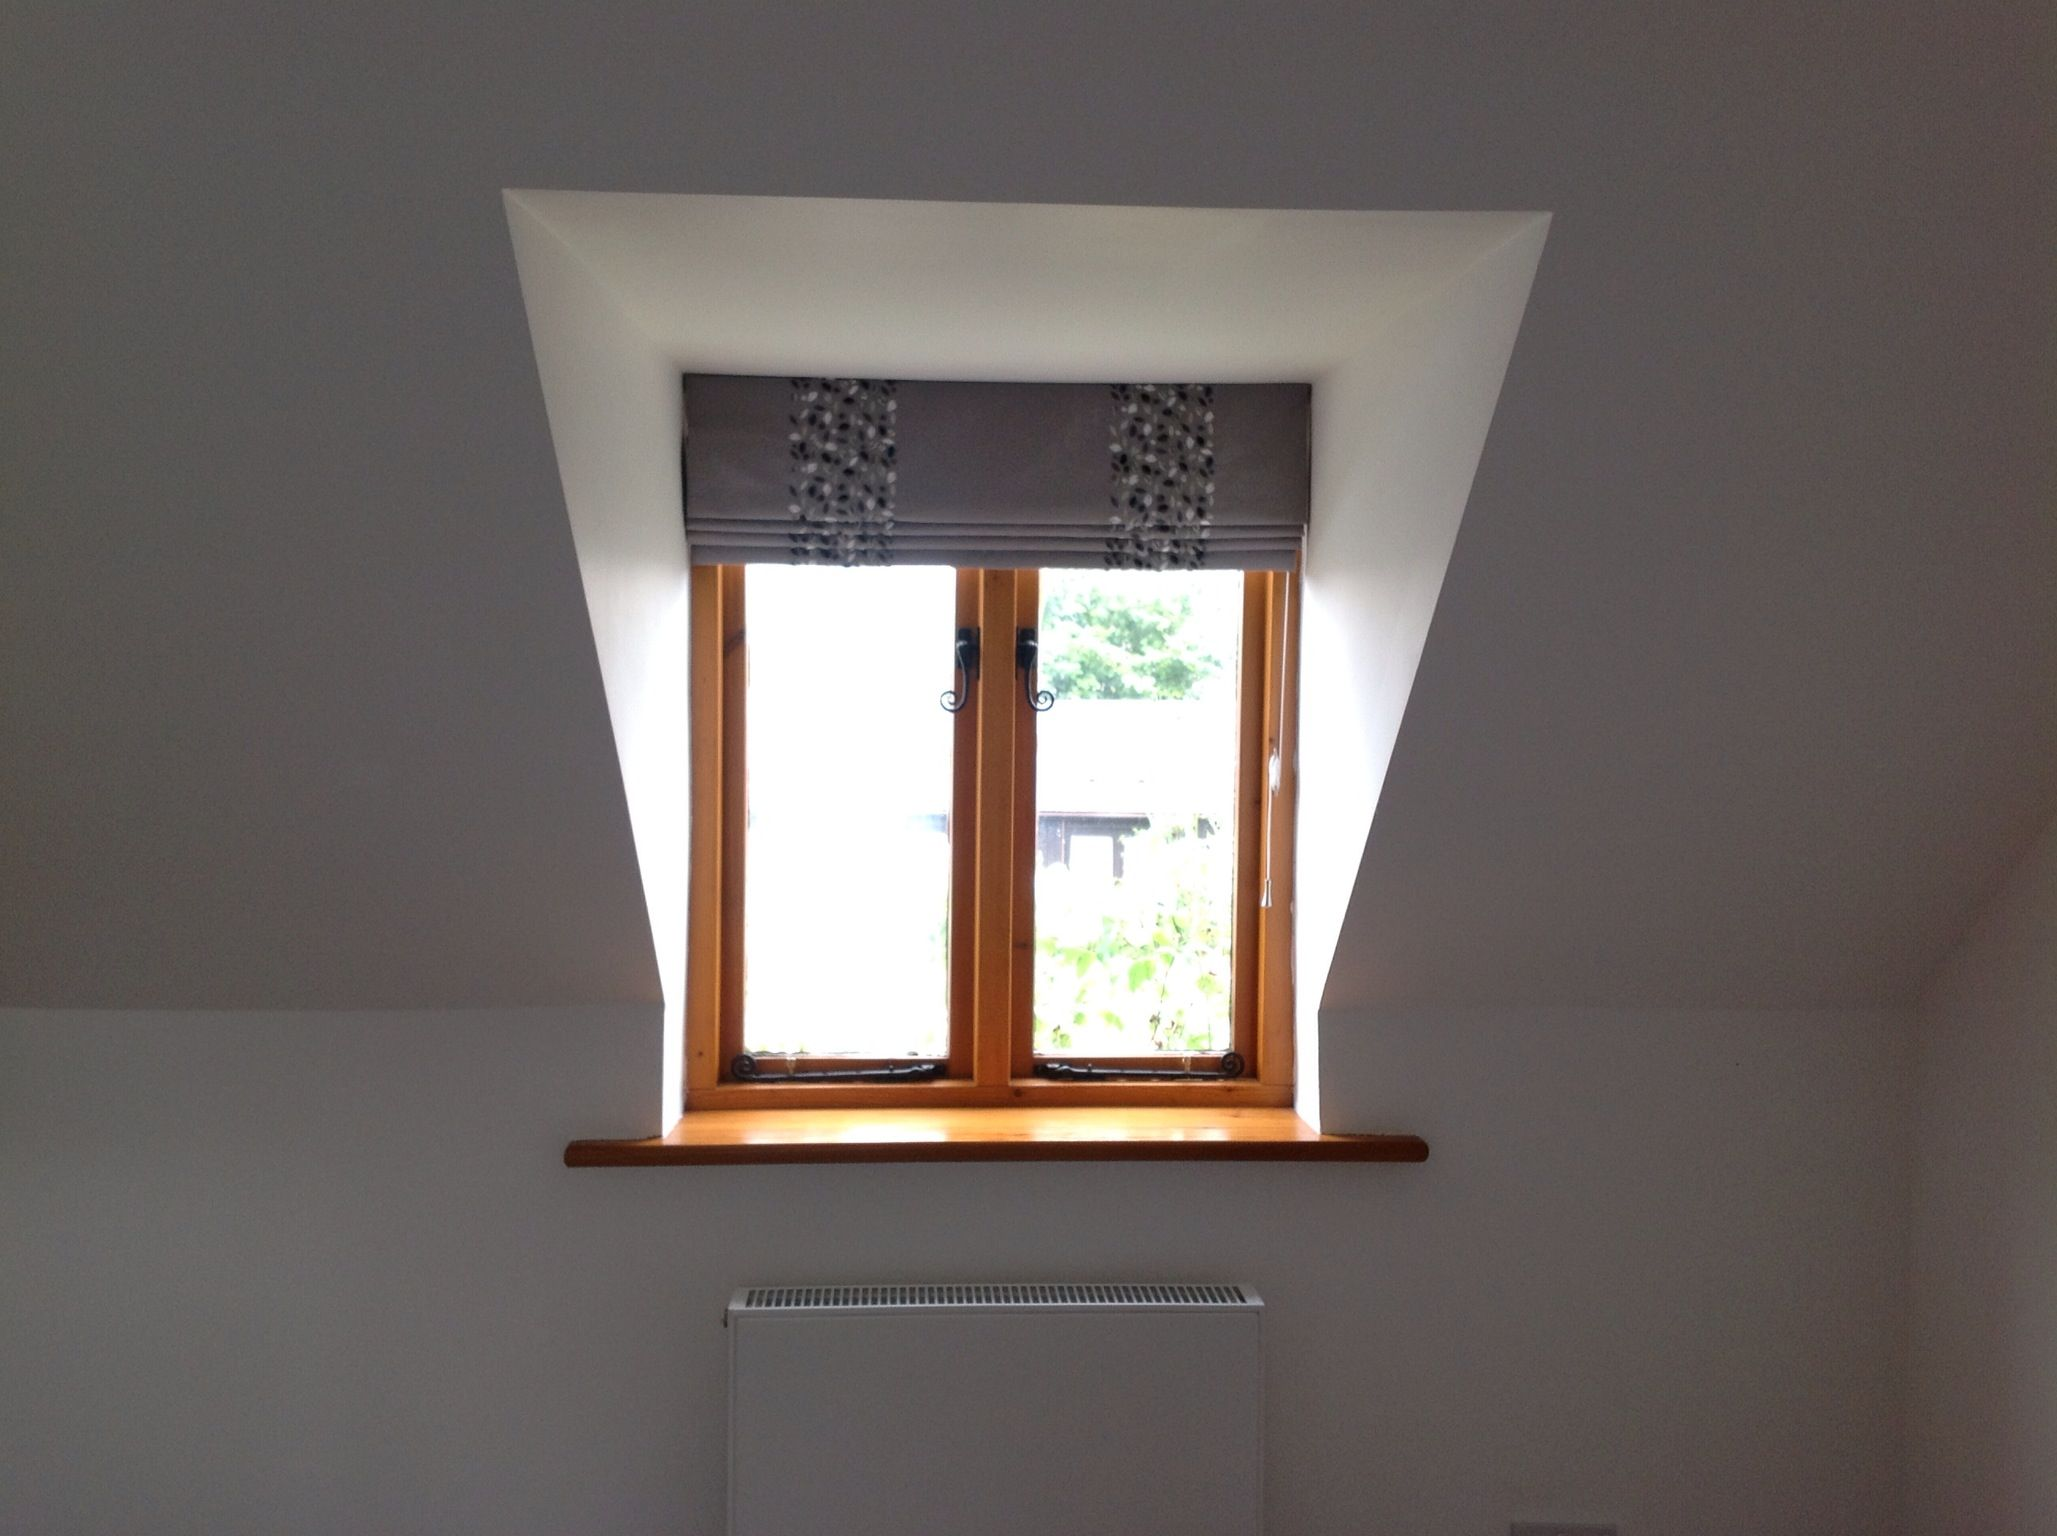 Image Result For Horizontal Blinds And Roman Blinds On